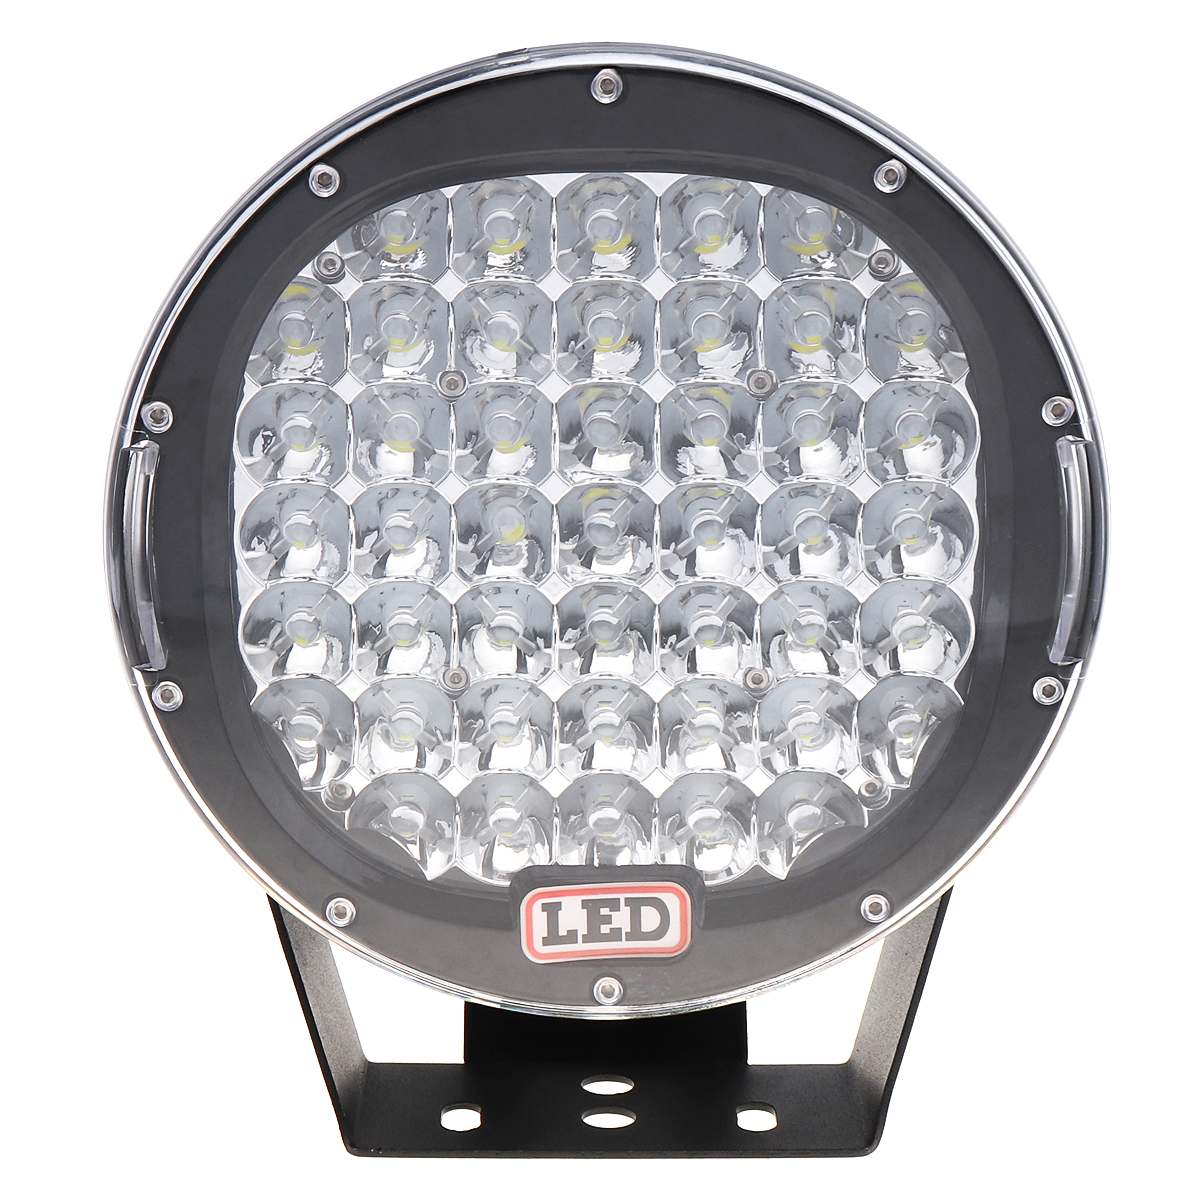 Image 3 - Round LED Spotlights 225W 45x  LED  Car Light Bar As Worklight Spot Light For Boating Fishing SUV Spotlight LED Lights-in Car Headlight Bulbs(LED) from Automobiles & Motorcycles